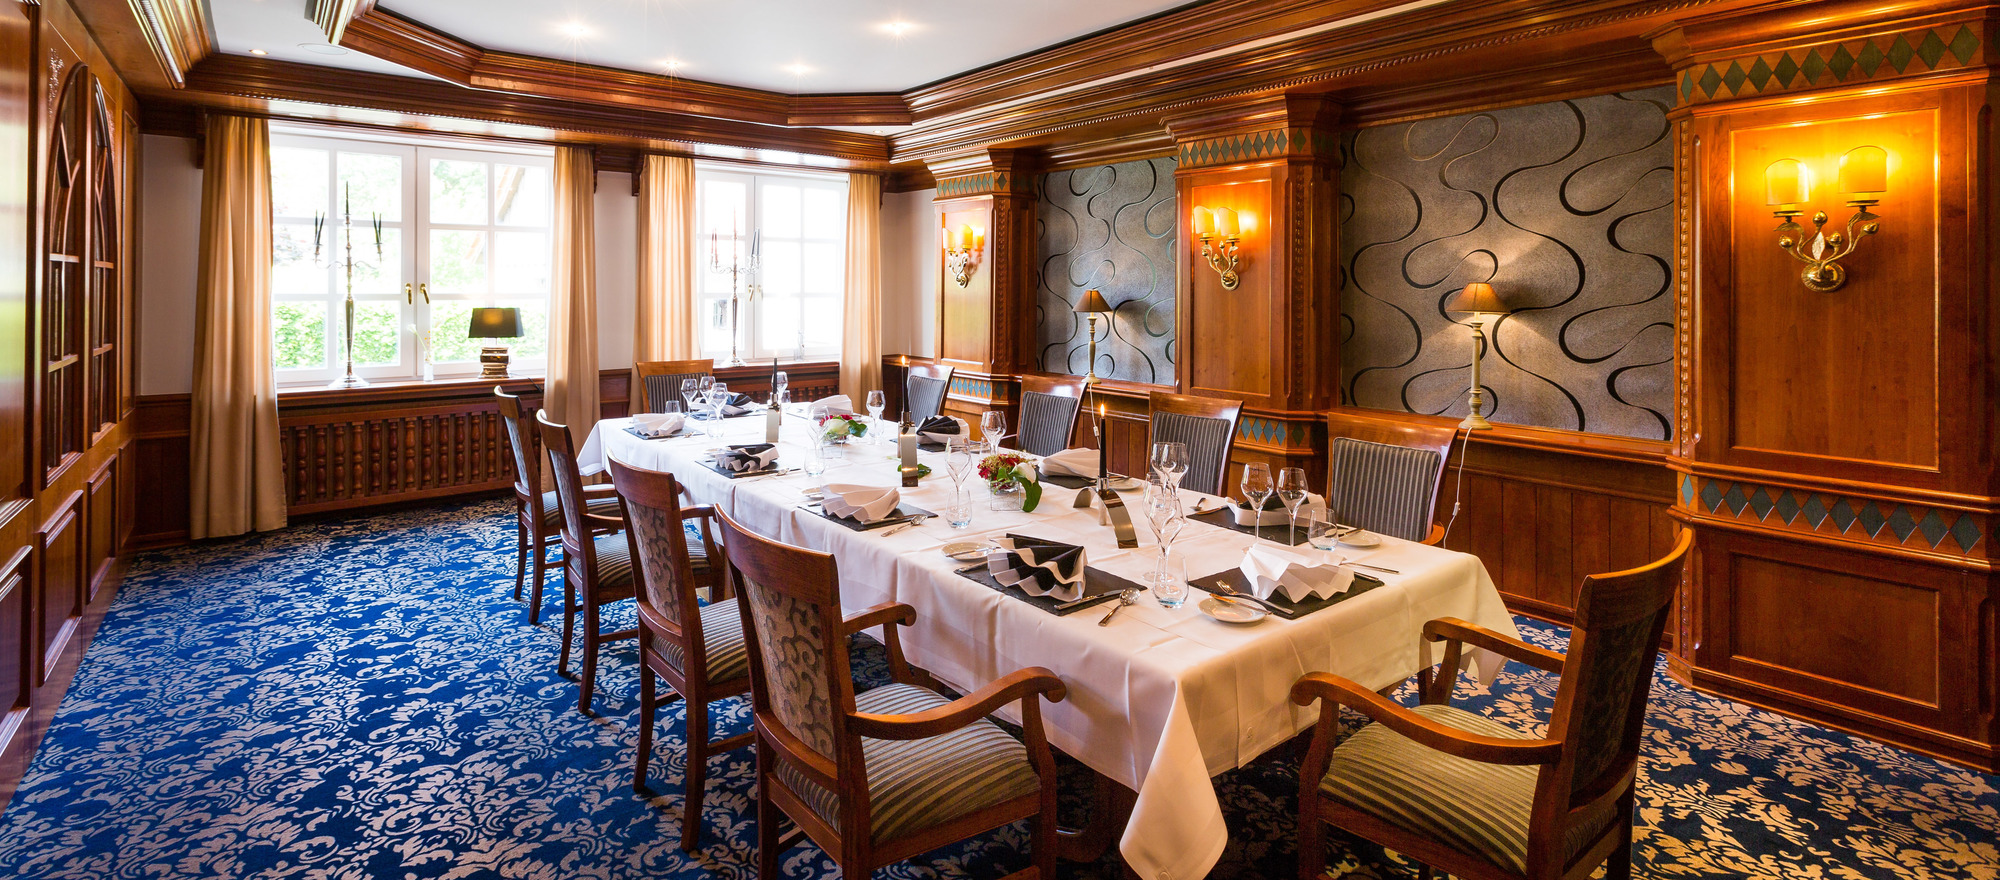 Restaurant in the 3-star hotel Ringhotel Germanenhof in Steinheim-Sandebeck